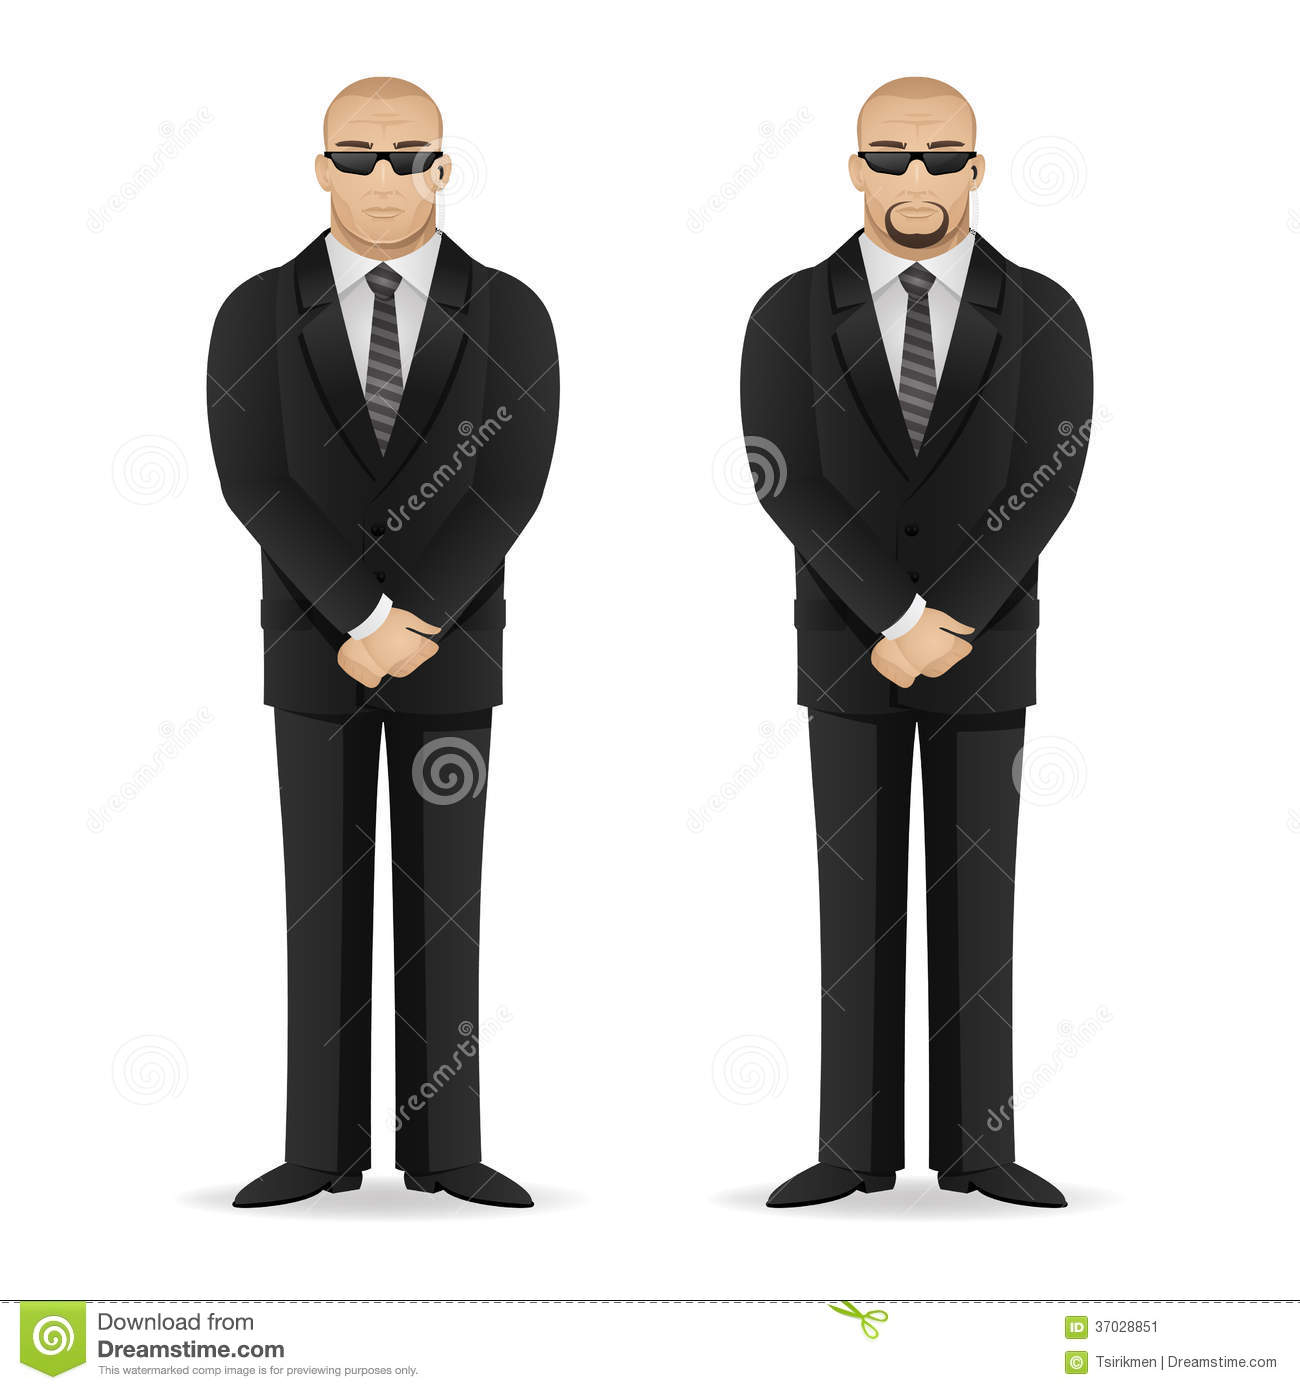 Bodyguard Stands In Closed Pose Stock Image - Image: 37028851